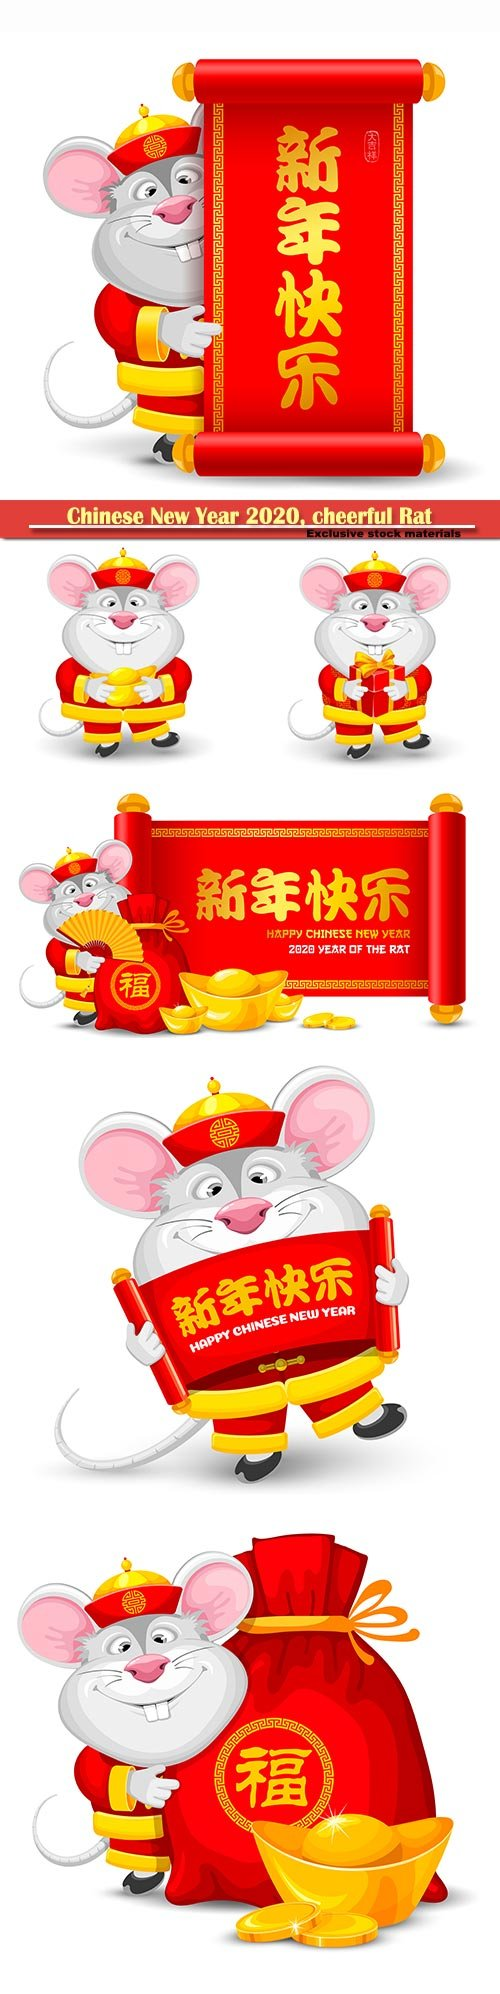 Chinese New Year 2020, cheerful Rat as symbol of new 2020 year